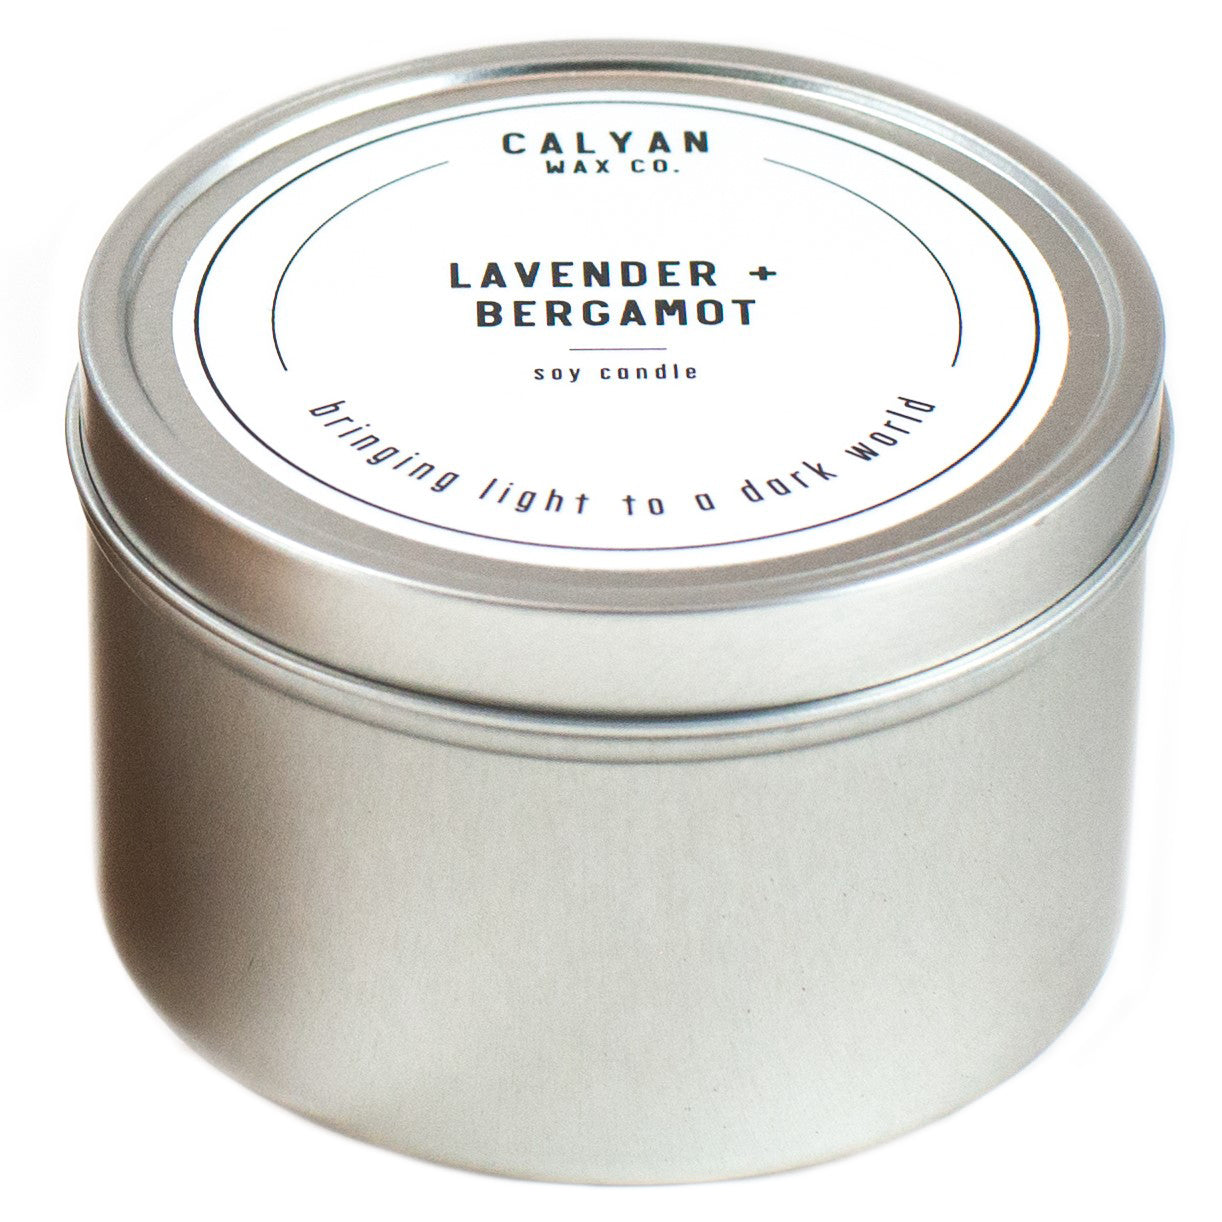 Natural soy candle in a metal tin - Calyan Wax Co.